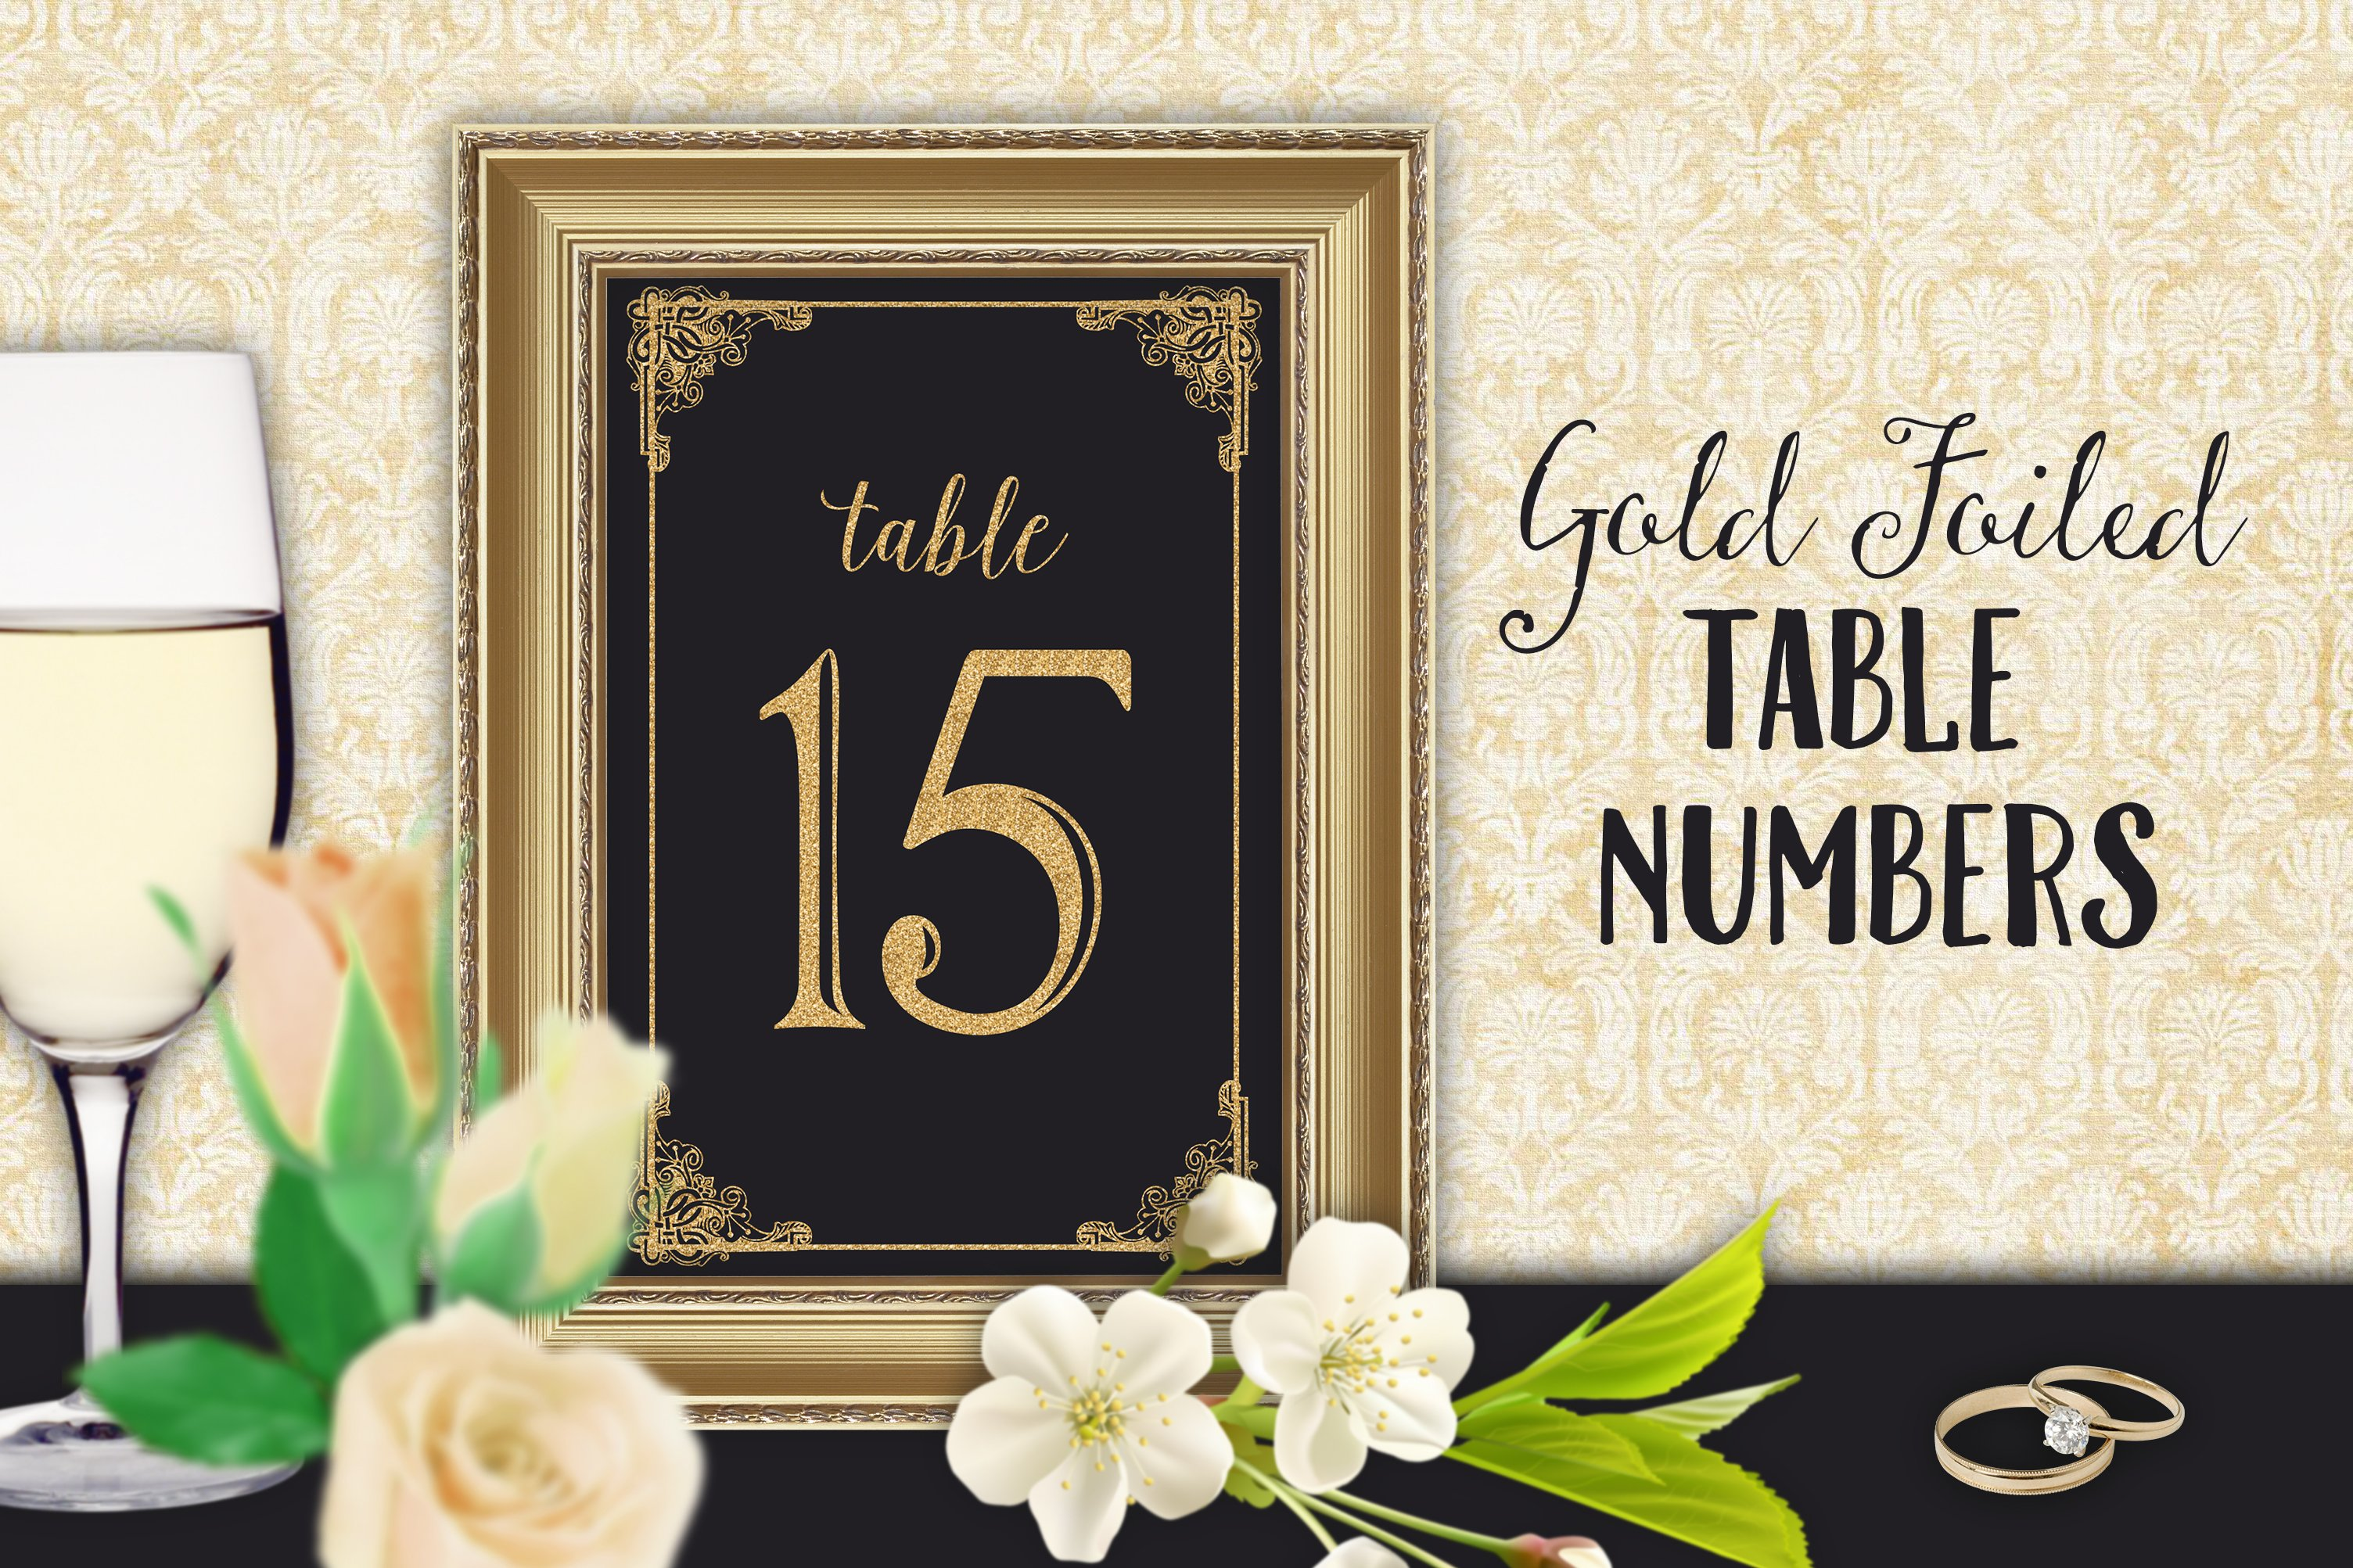 Table numbers wedding reception graphics creative market for Table 52 number